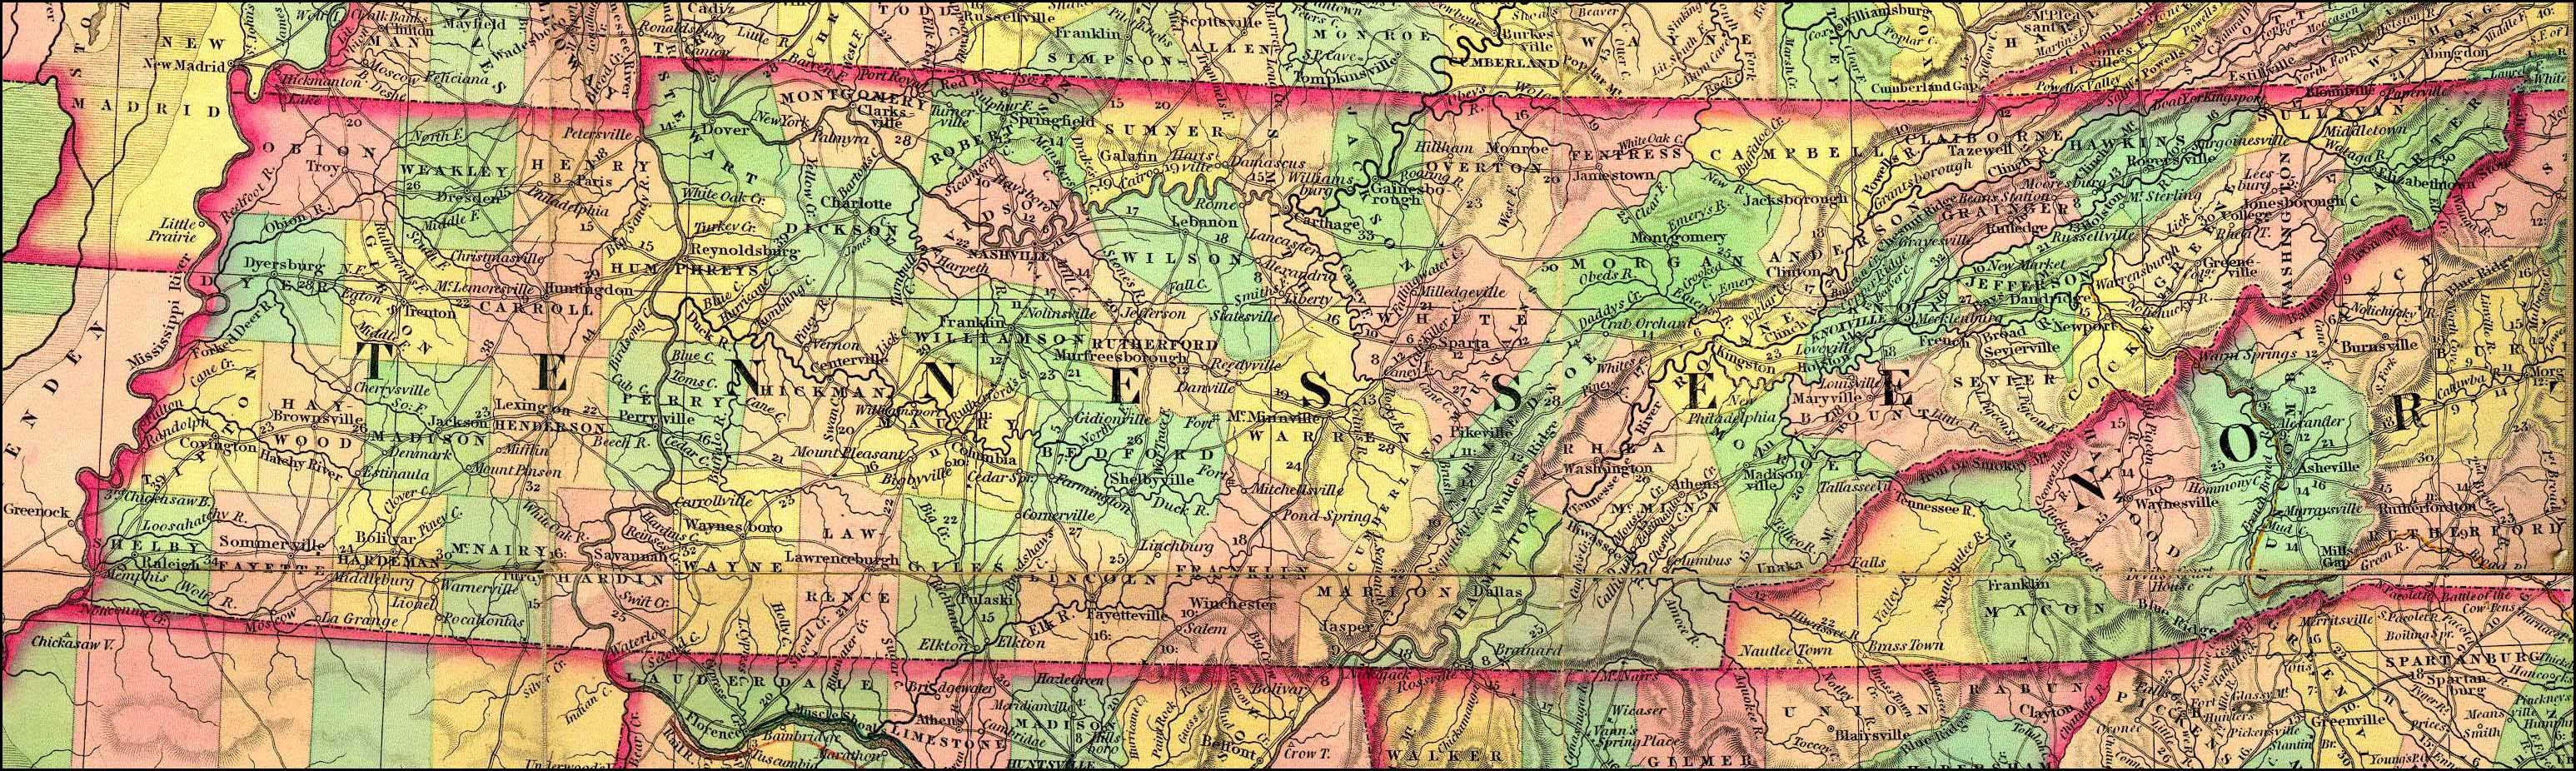 early bledsoe county tn maps detailed tennessee map 1834 by henry